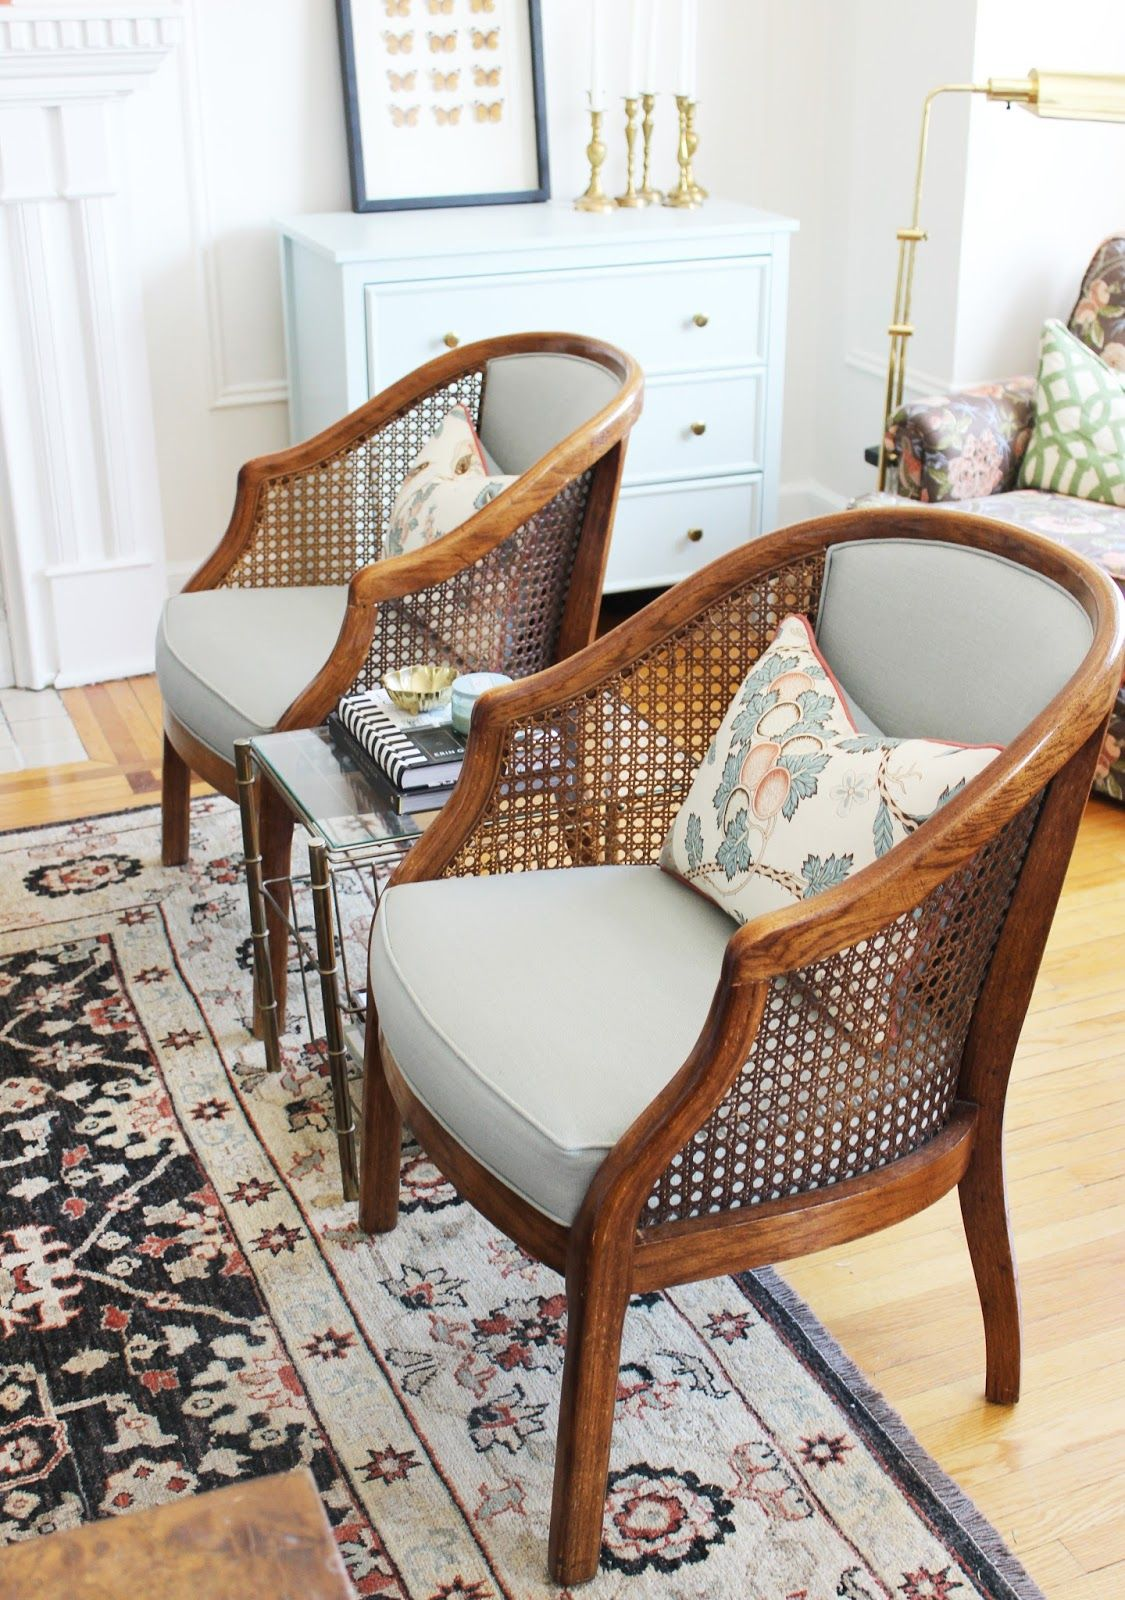 where can i buy cane for chairs porch and table tiffany leigh interior design chair makeover switch studio